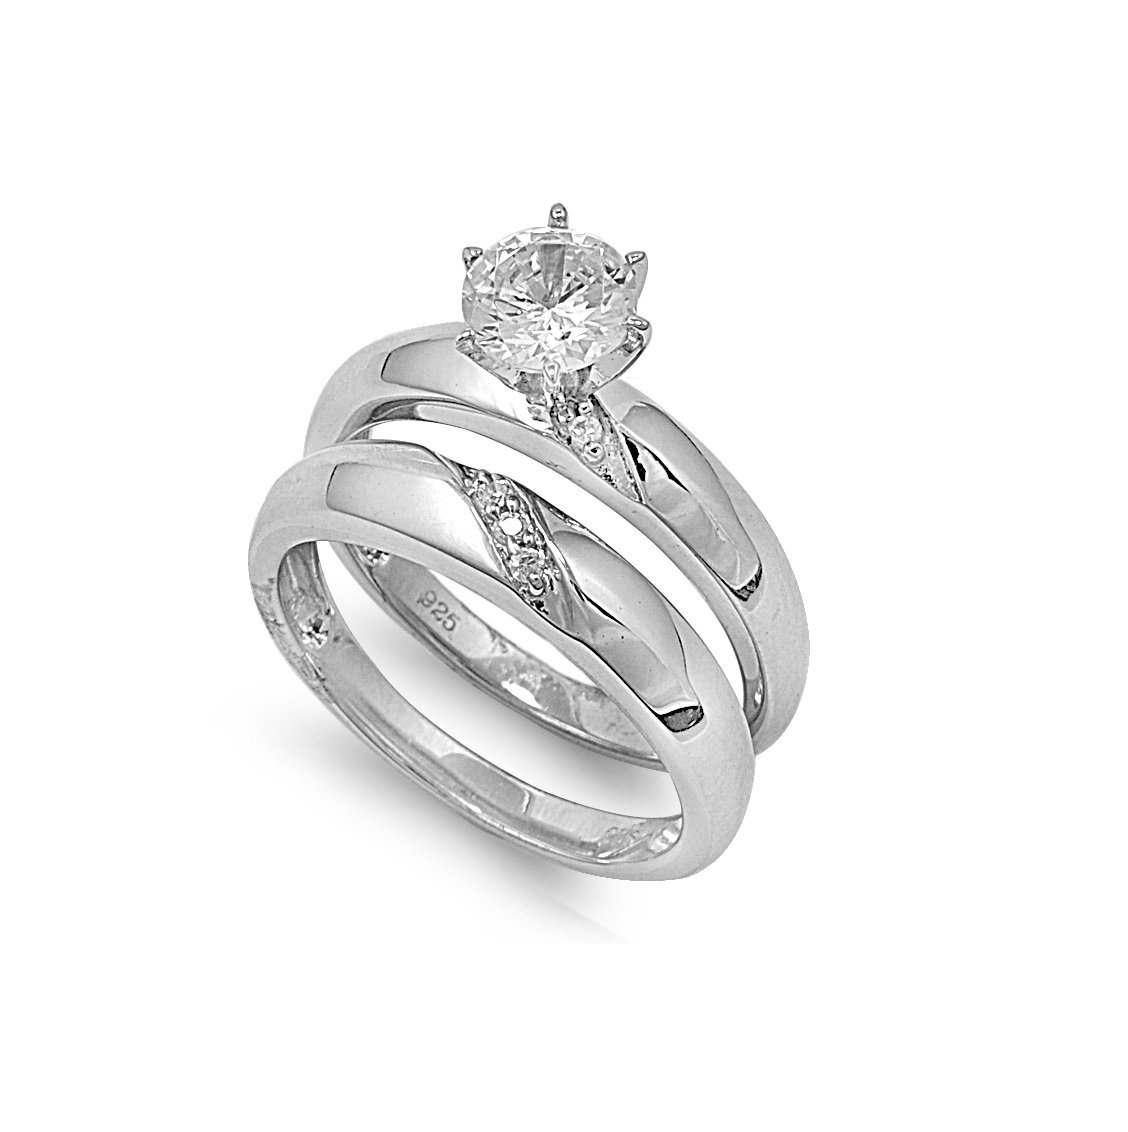 CloseoutWarehouse Round Center with Round And Baguette Stones Cubic Zirconia Wedding Set Ring Sterling Silver Size 7